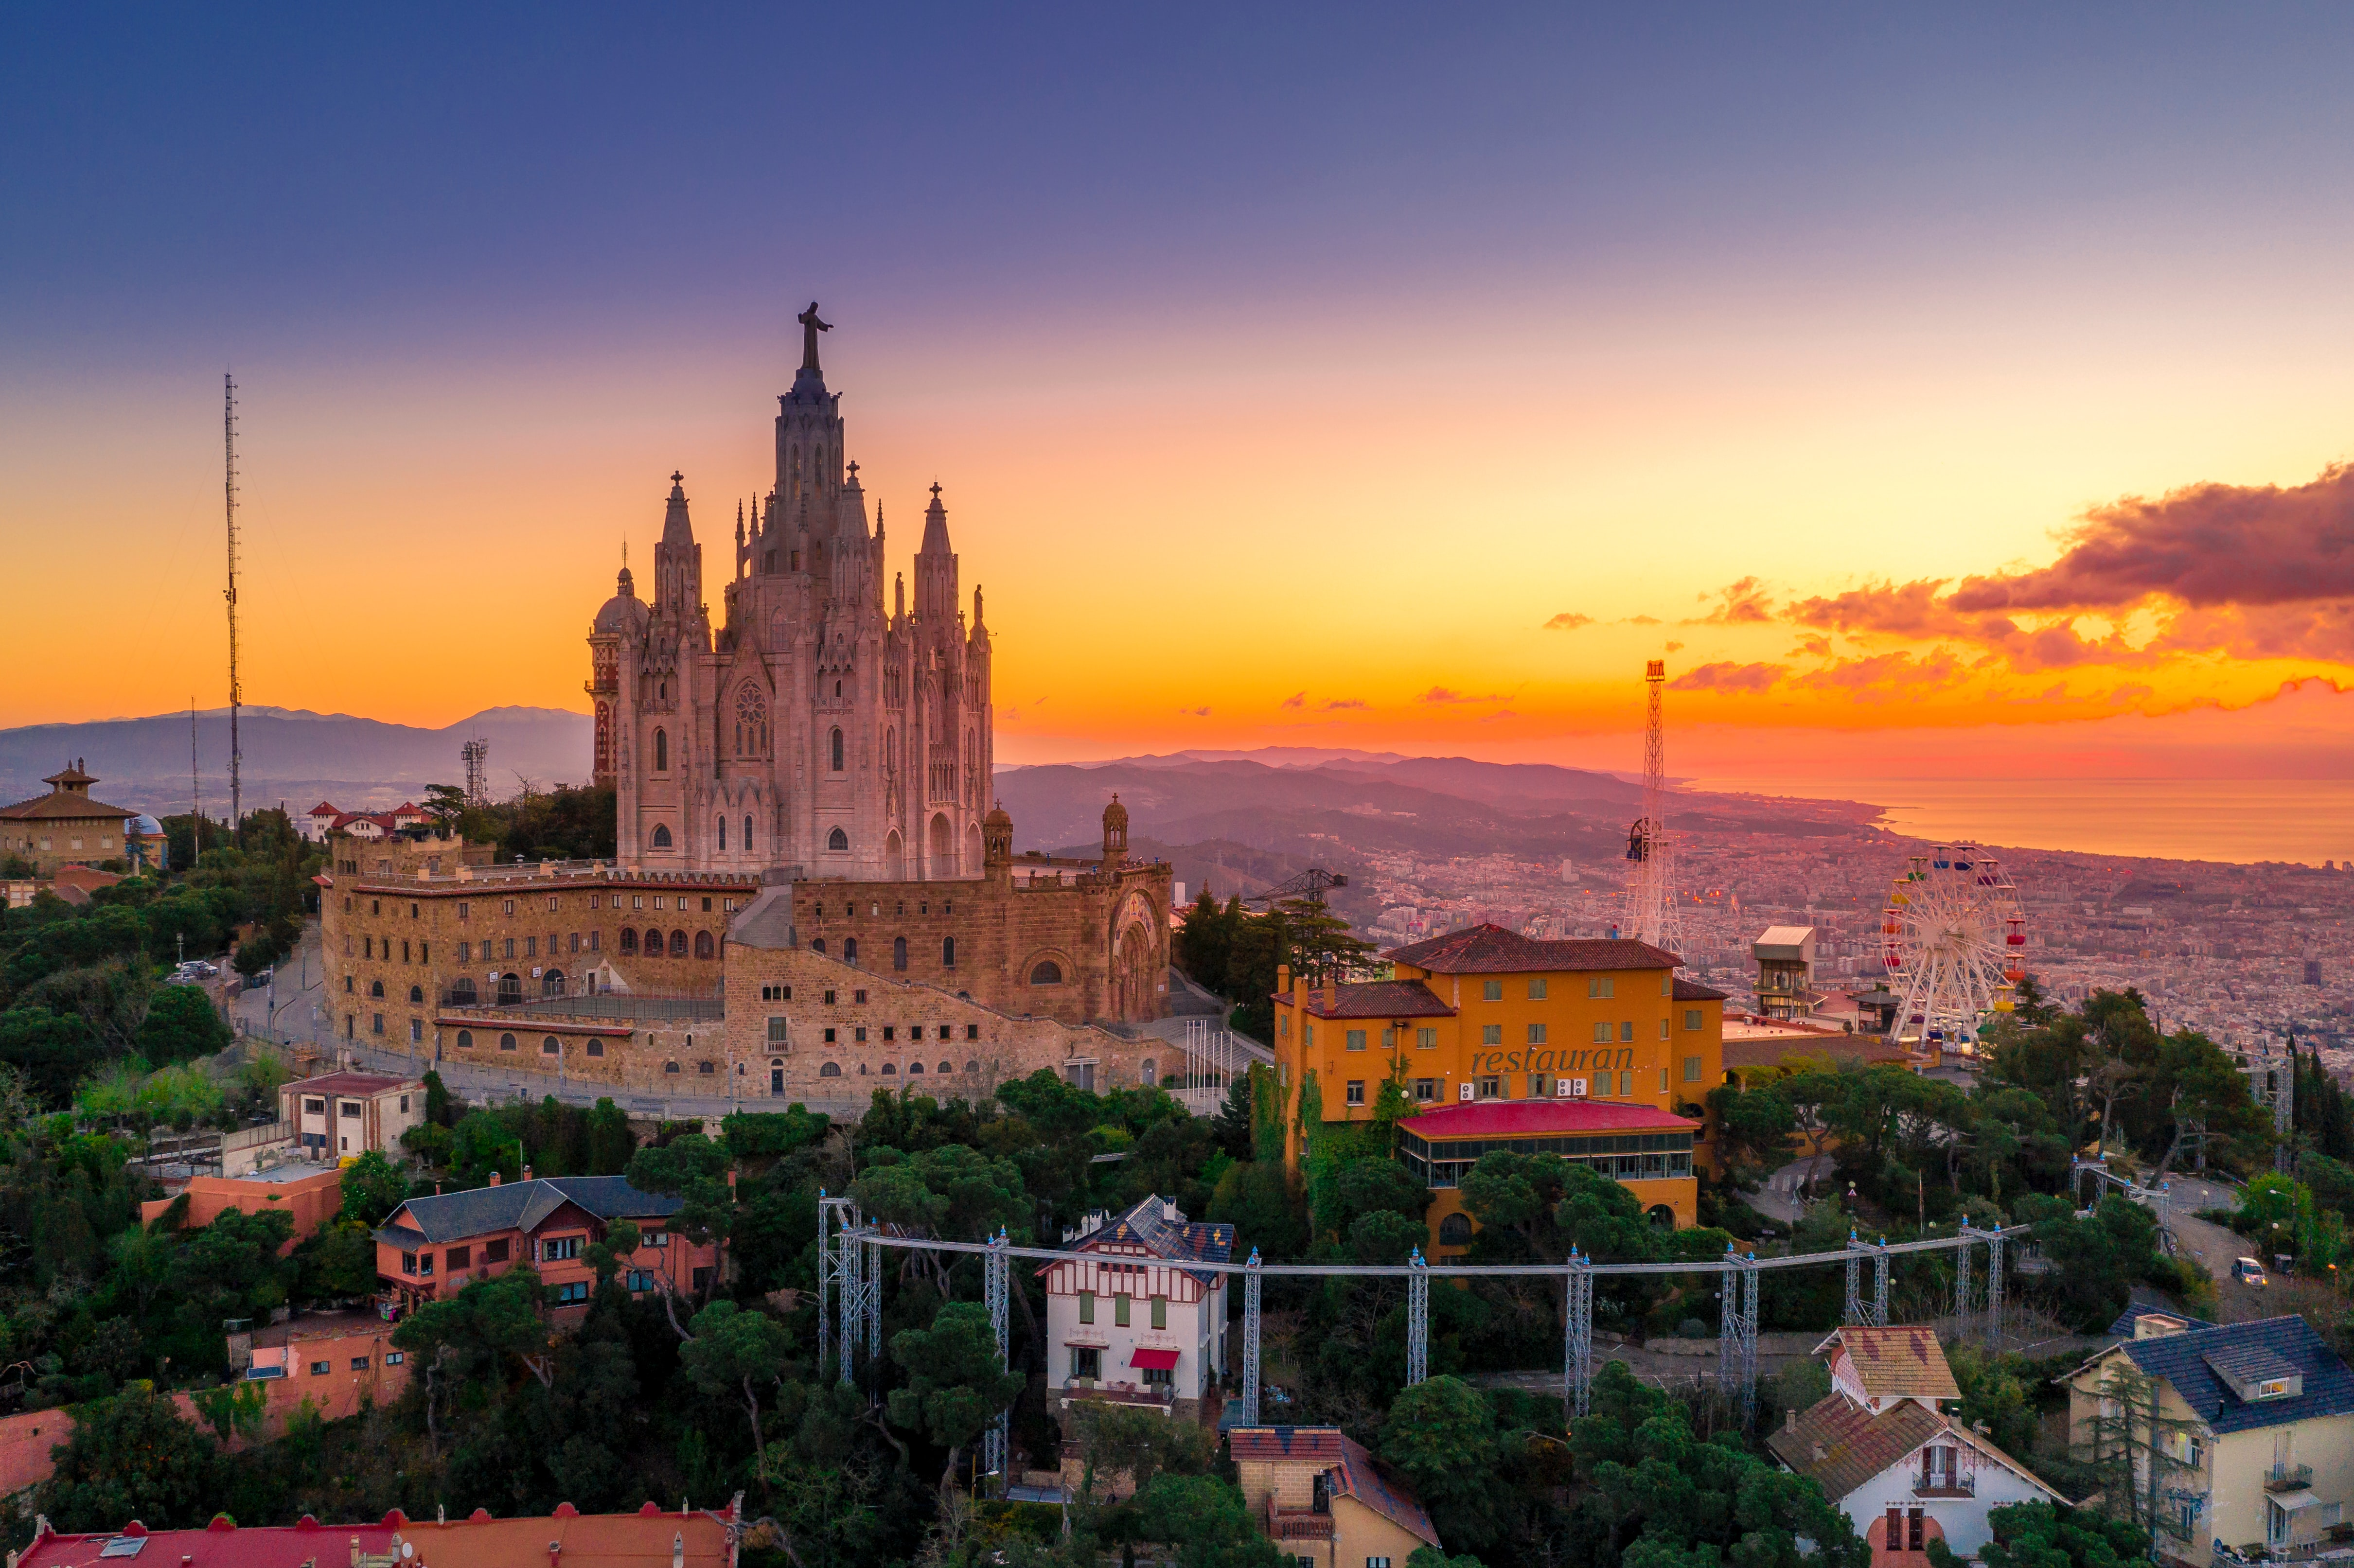 a view of Barcelona city in Spain with an orange sunset.